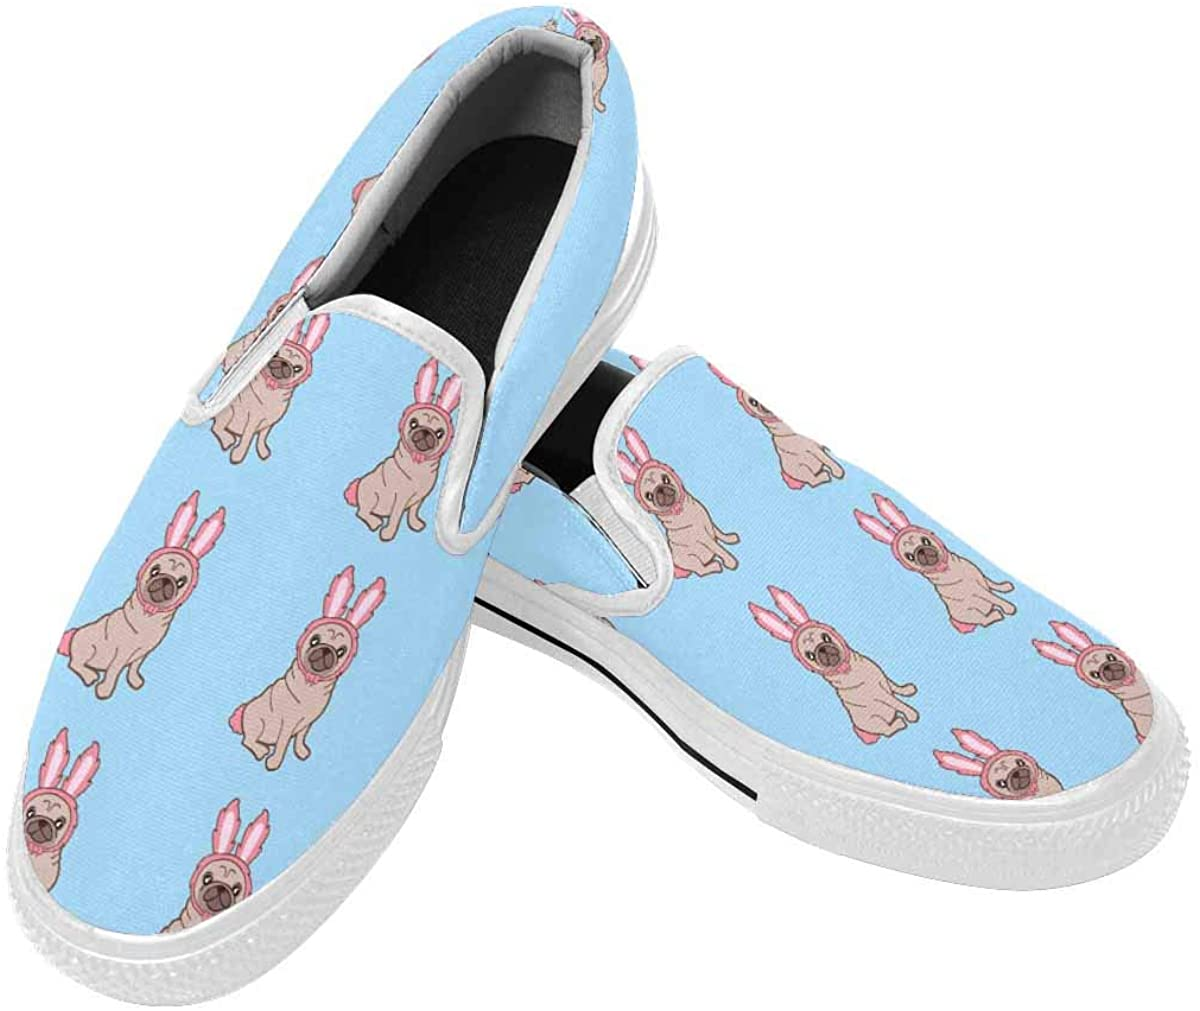 INTERESTPRINT Slip-On Shoes for Men, Canvas Loafers Shoes Non Slip Shoes with Rubber Sole Cartoon Funny Dog US10